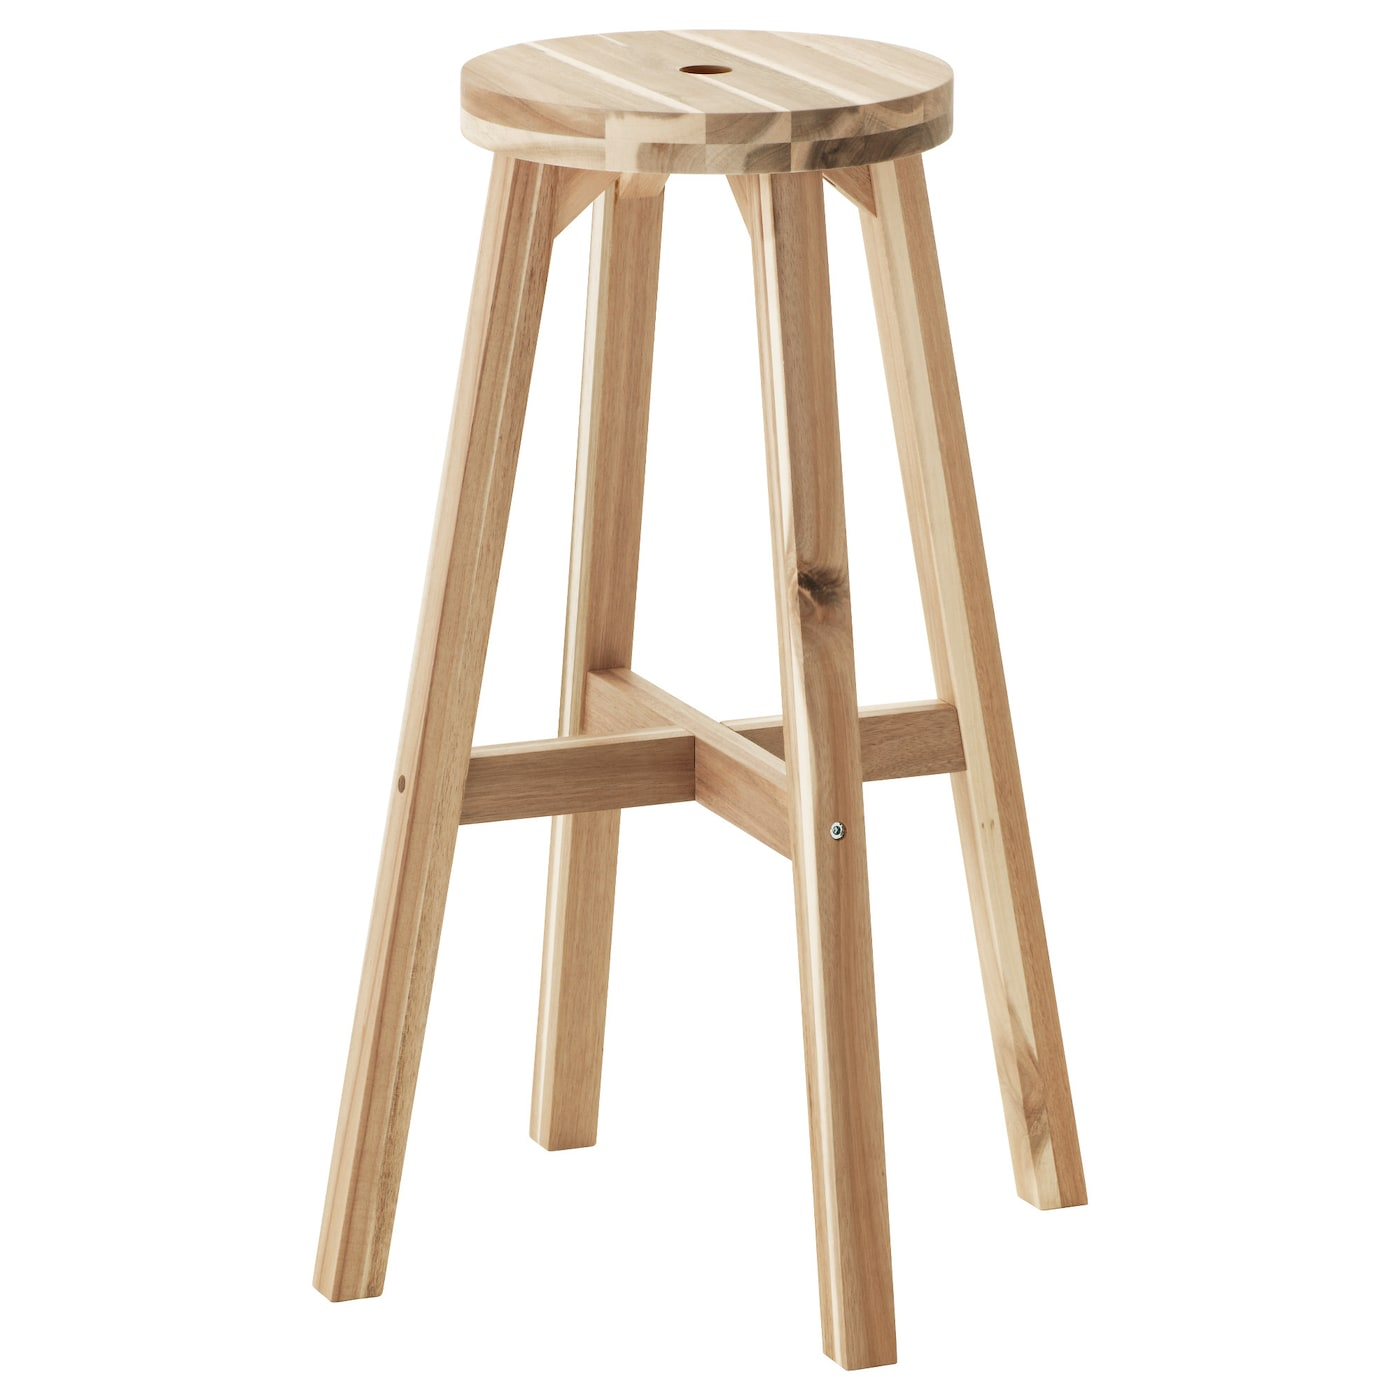 Bar Stools For A Bar Part - 24: IKEA SKOGSTA Bar Stool Solid Wood Is A Hardwearing Natural Material.